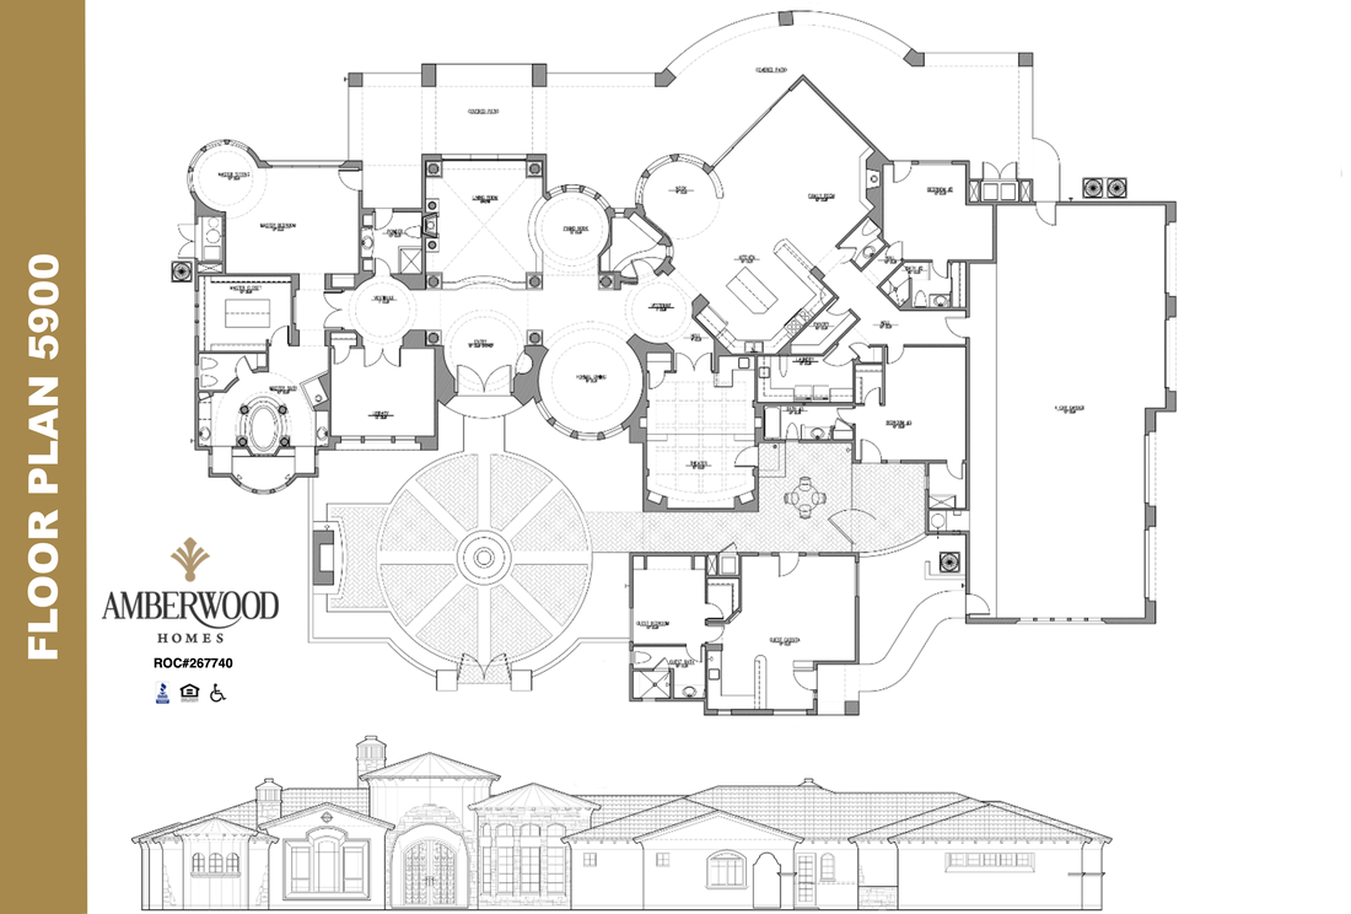 Amber with Holmes floorplans and Designs, by Billy Johnson